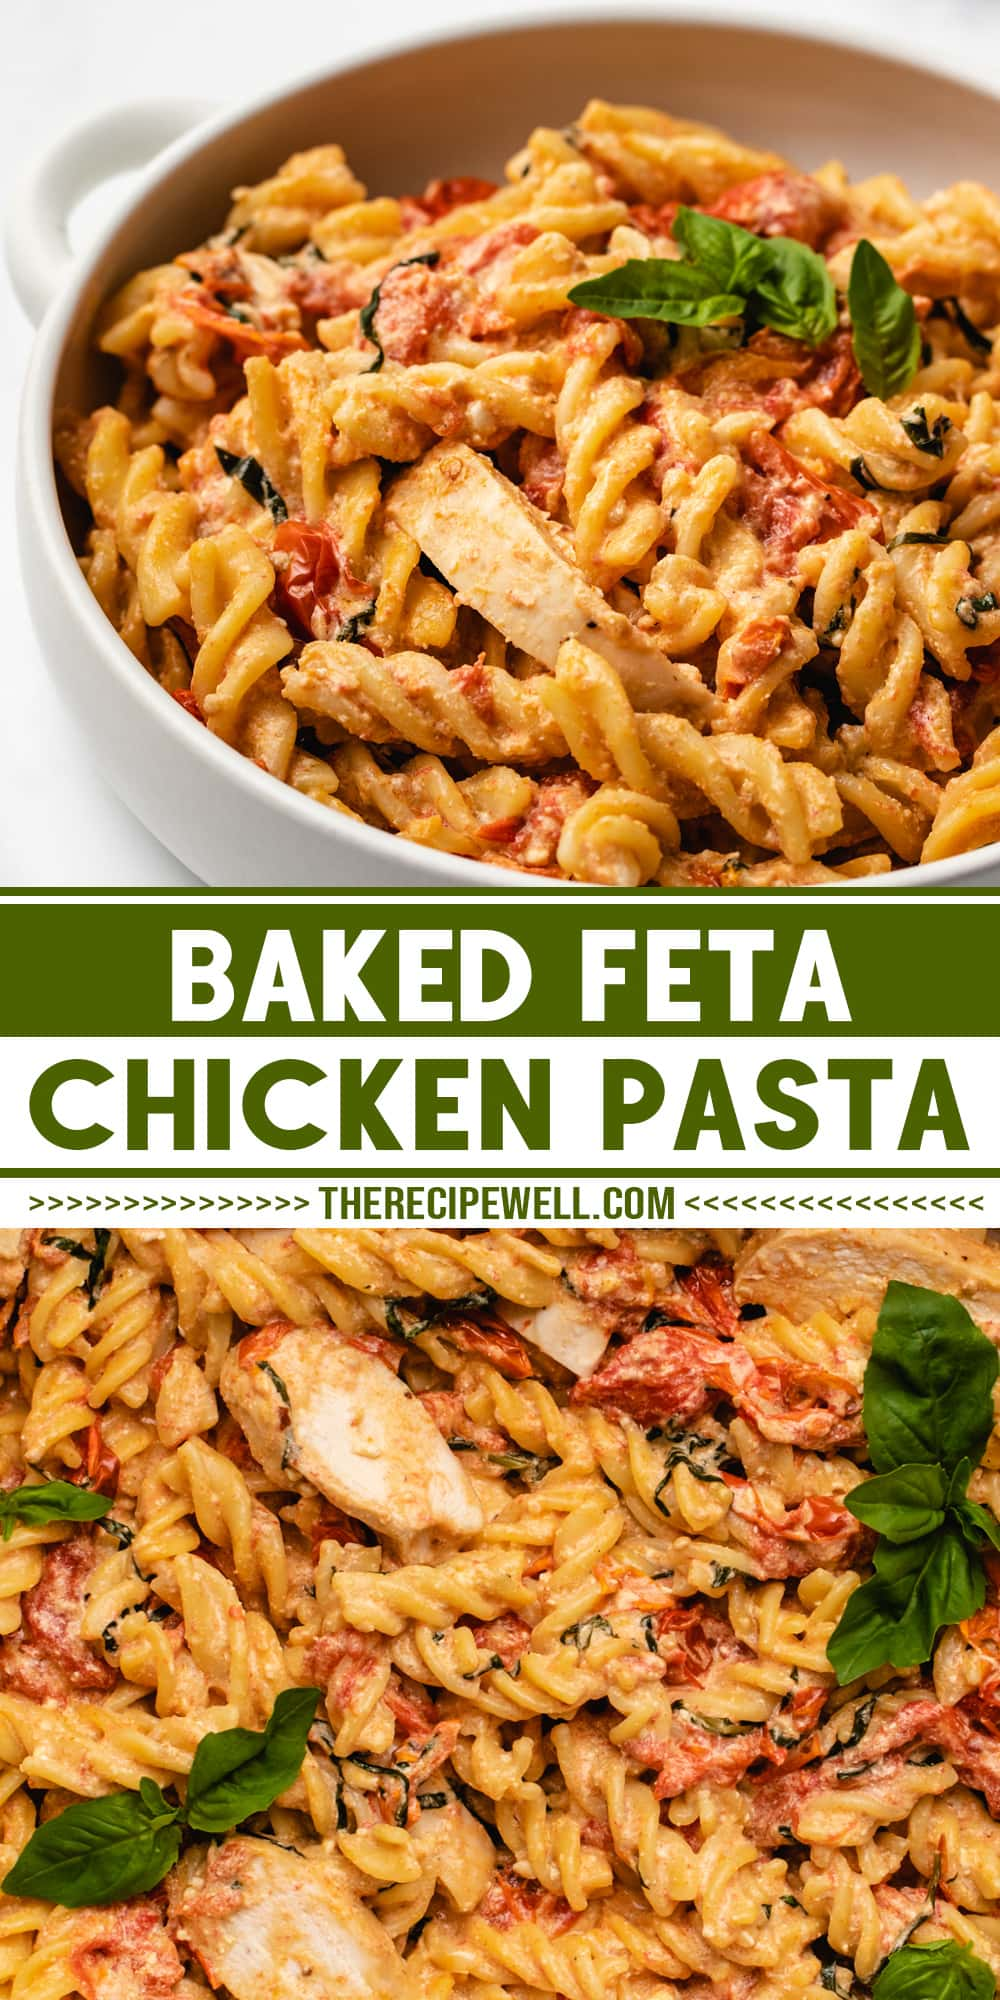 Baked Feta Chicken Pasta is a quick dinner made with a handful of simple, fresh ingredients. Inspired by the viral Tik Tok baked feta pasta, you'll love this higher protein version with chicken! via @therecipewell